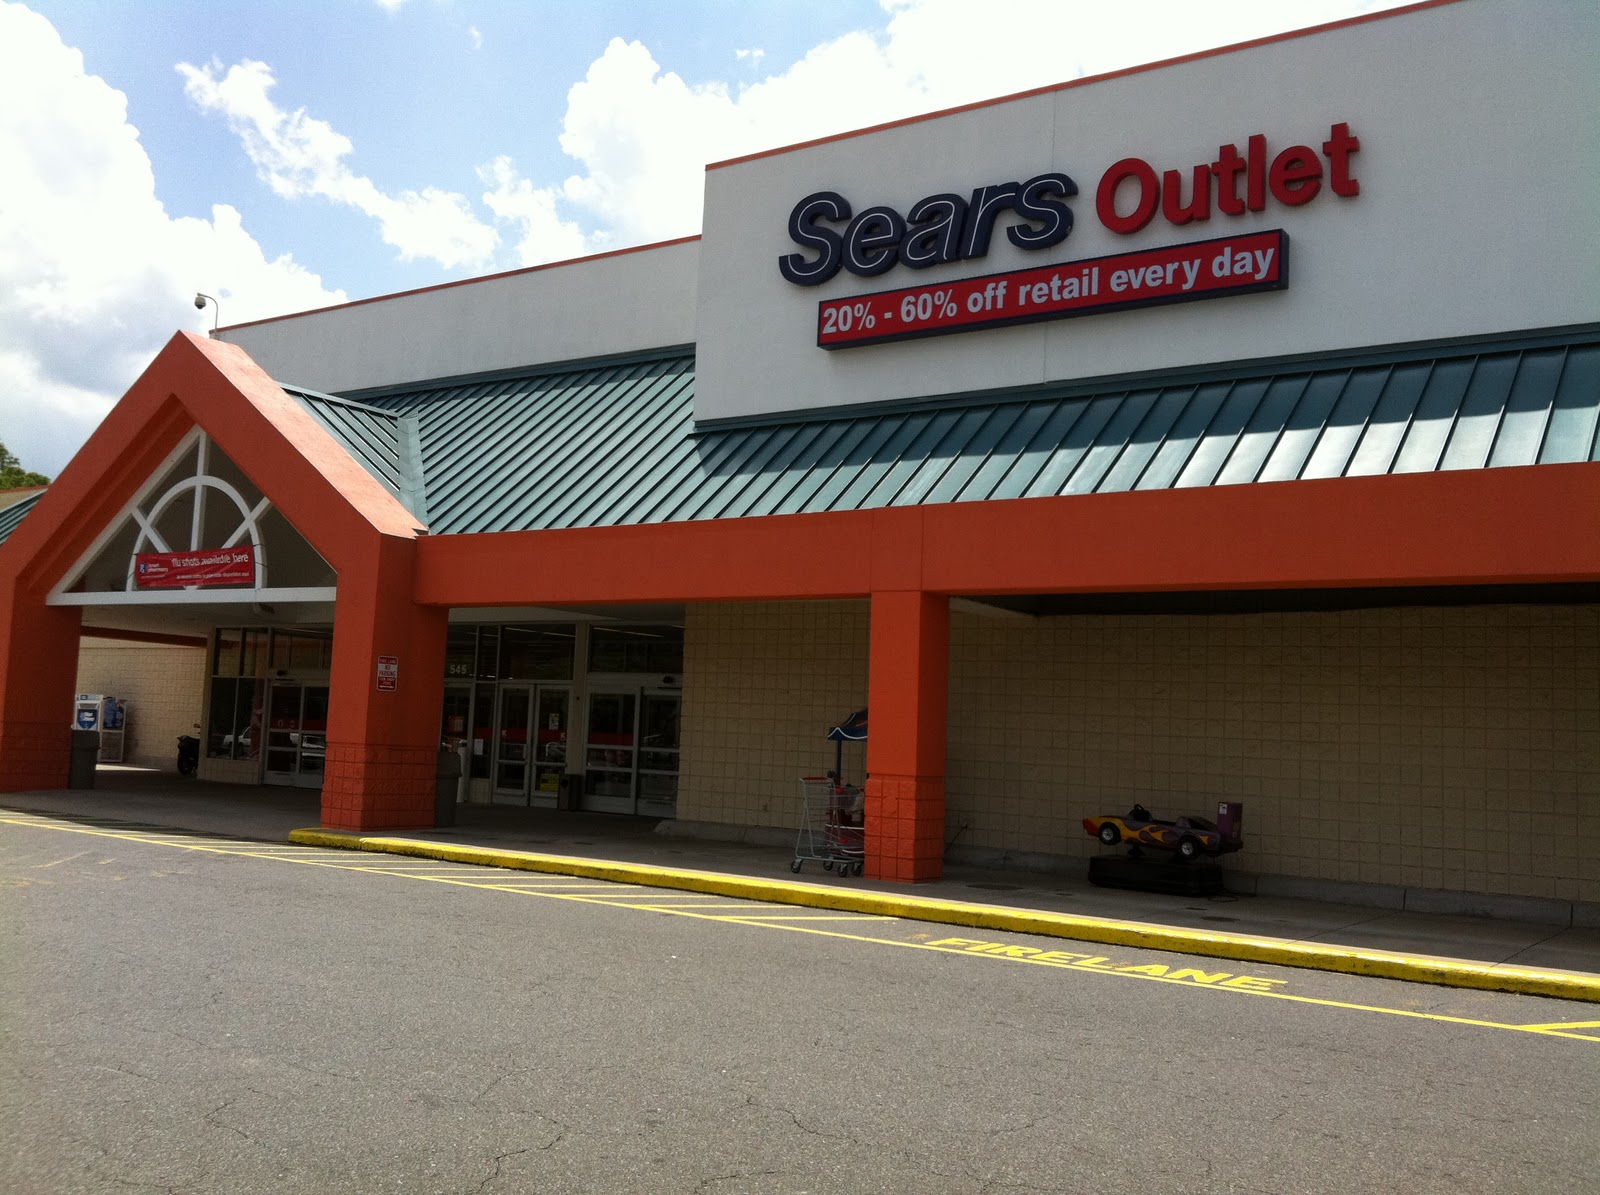 Aug 27,  · At Sears Outlet stores, you'll get in-store and online access to great outlet prices on a wide variety of products, including home appliances, apparel, mattresses, tools, household goods and power lawn and garden. Find the products you want at budget-friendly prices/5().